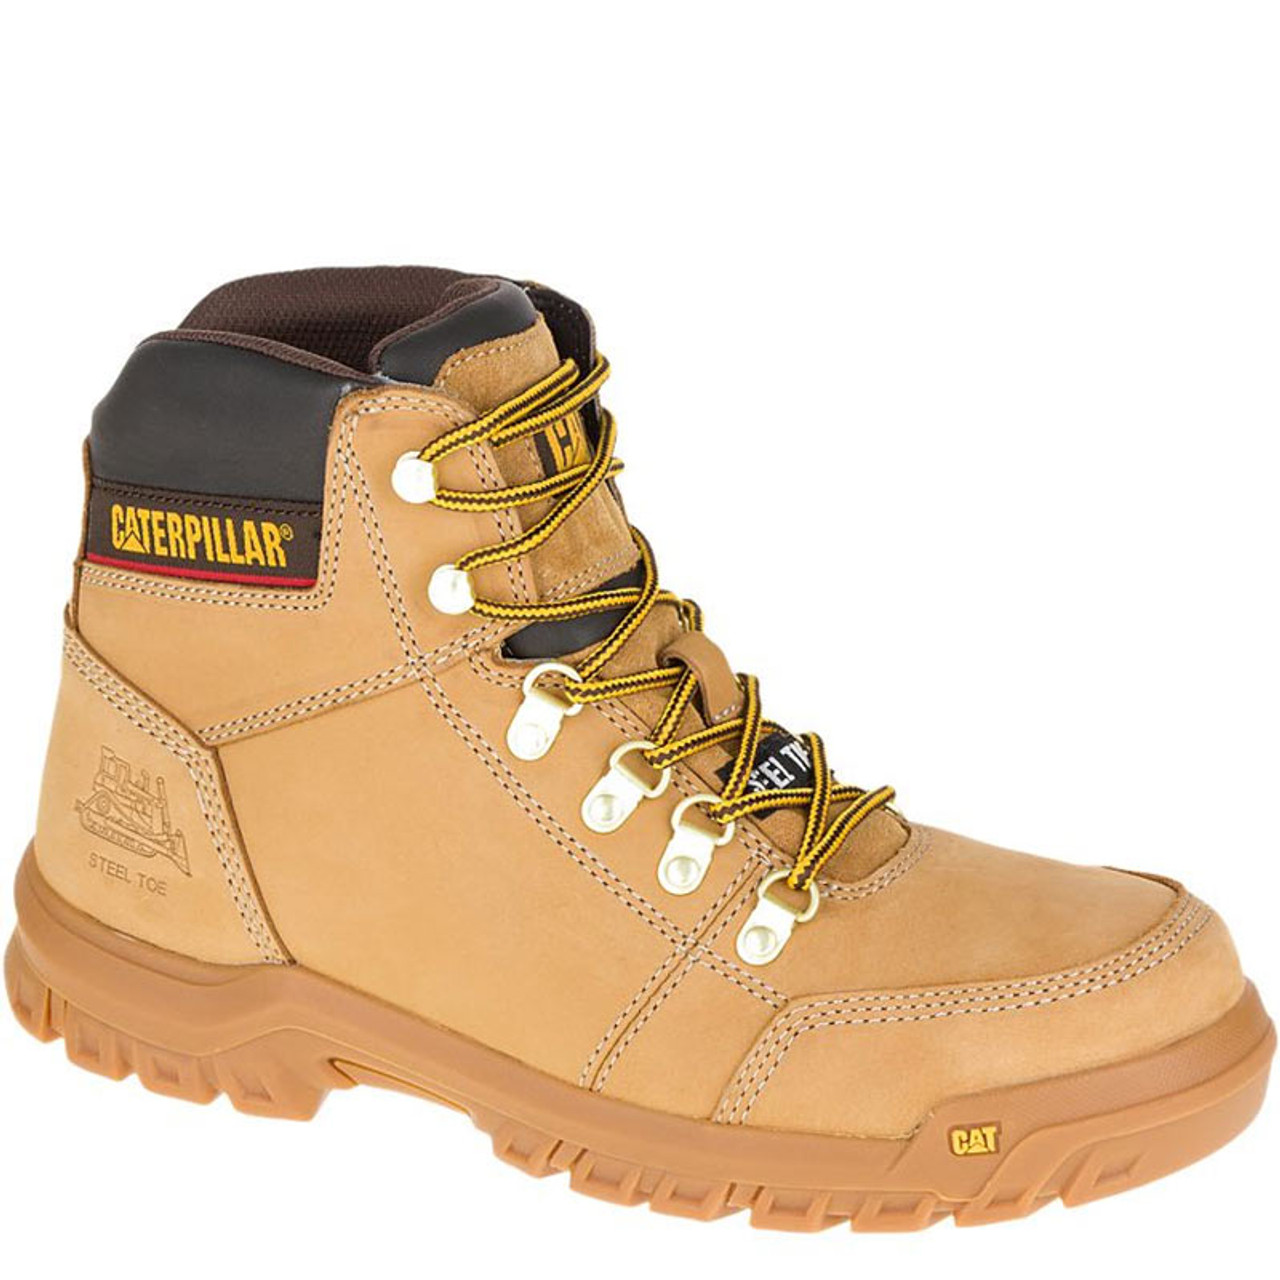 ed655c479e69 CAT P90801 OUTLINE Steel Toe Non-Insulated Gold Work Boots - Family Footwear  Center